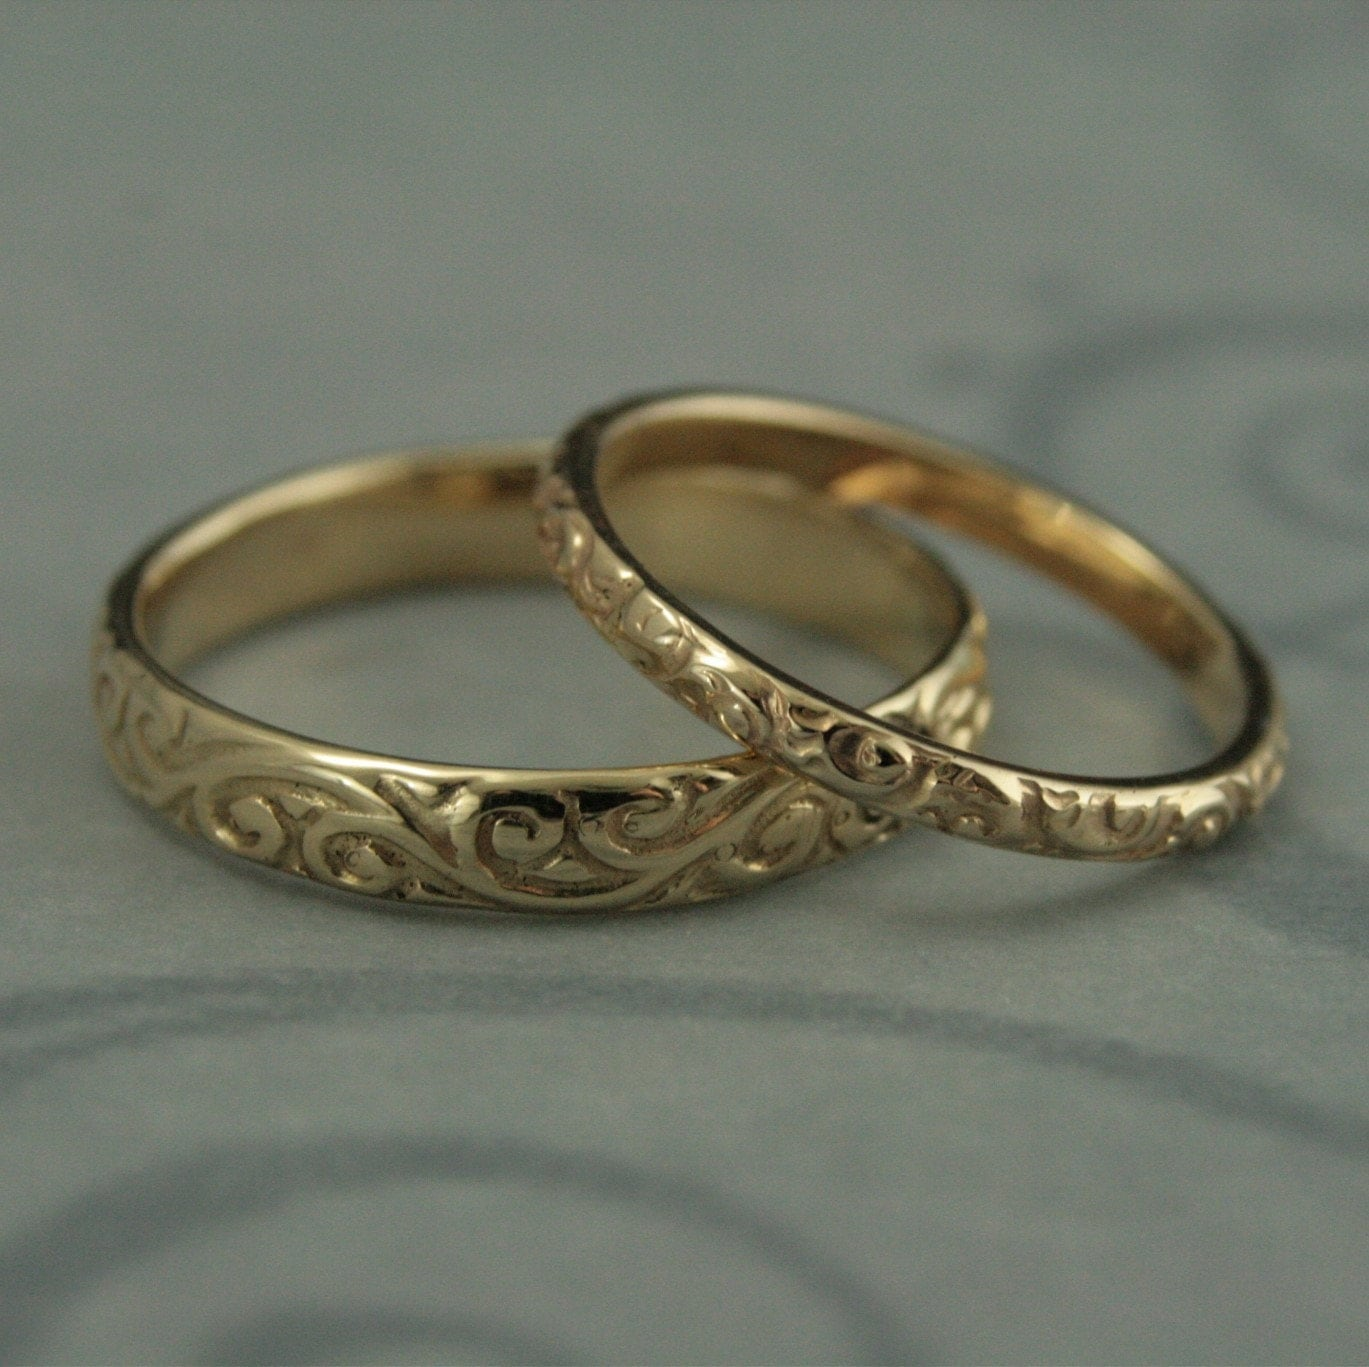 vintage wedding band vintage wedding ring sets Patterned Wedding Band Set Vintage Style Wedding Rings His and Hers Set Antique Style Rings 14K Gold Rococo Flourish Set His and Hers Bands